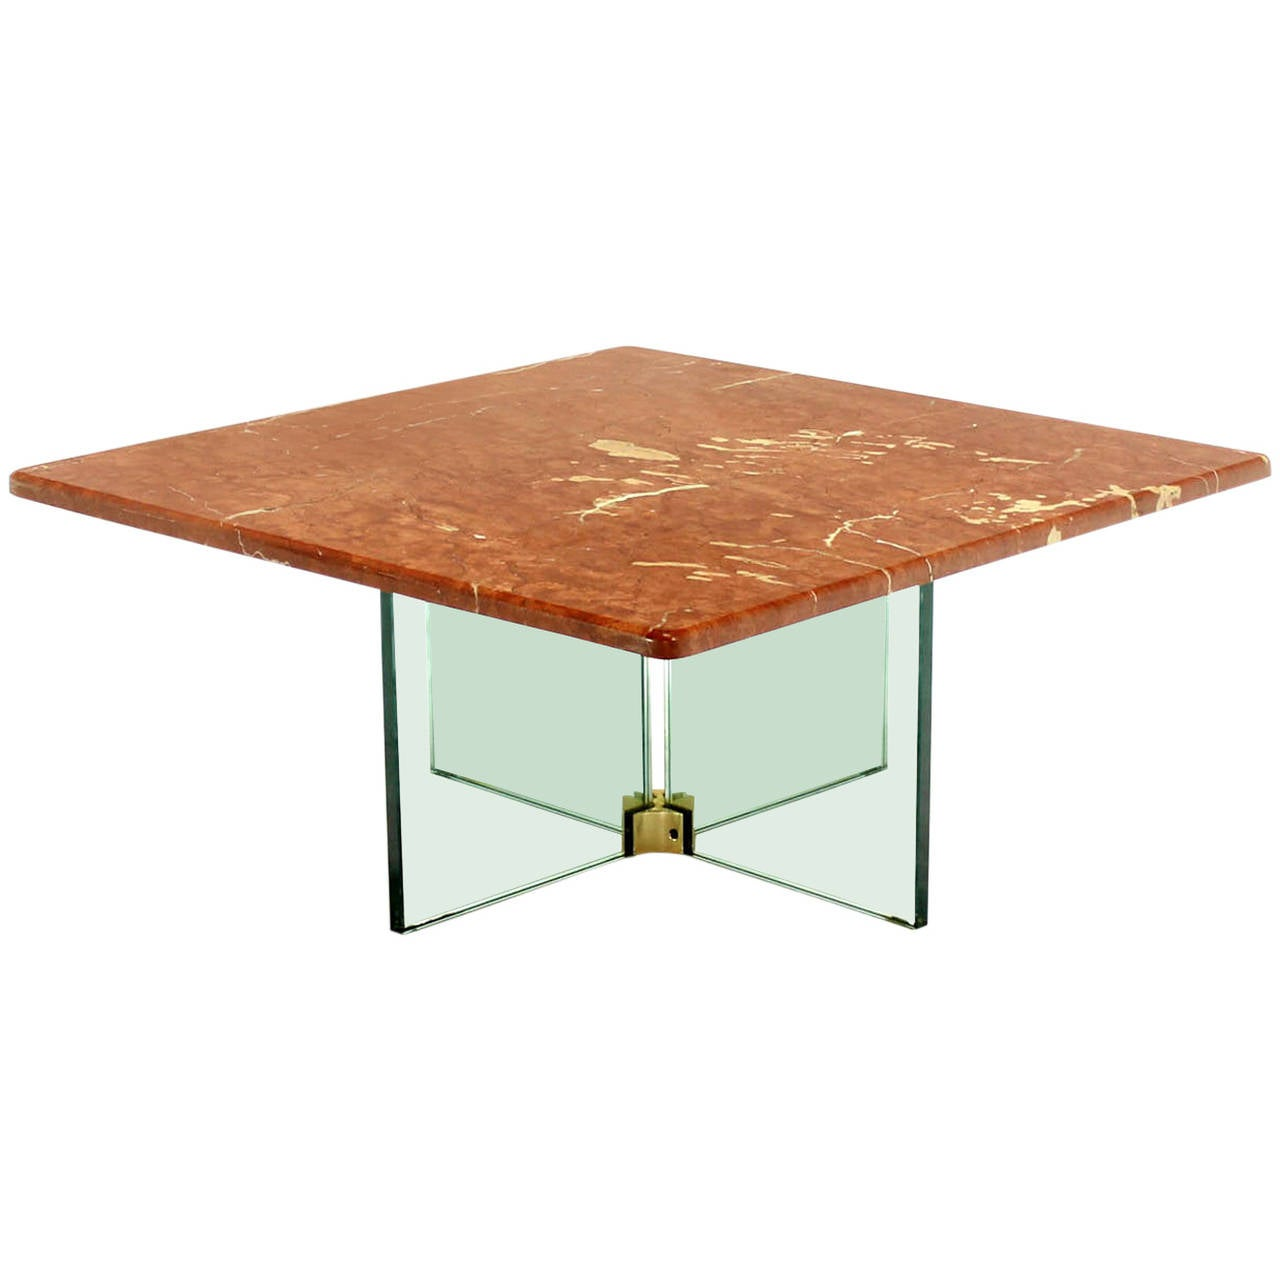 Glass x cross base coffee table w marble top for sale at 1stdibs Glass coffee table base